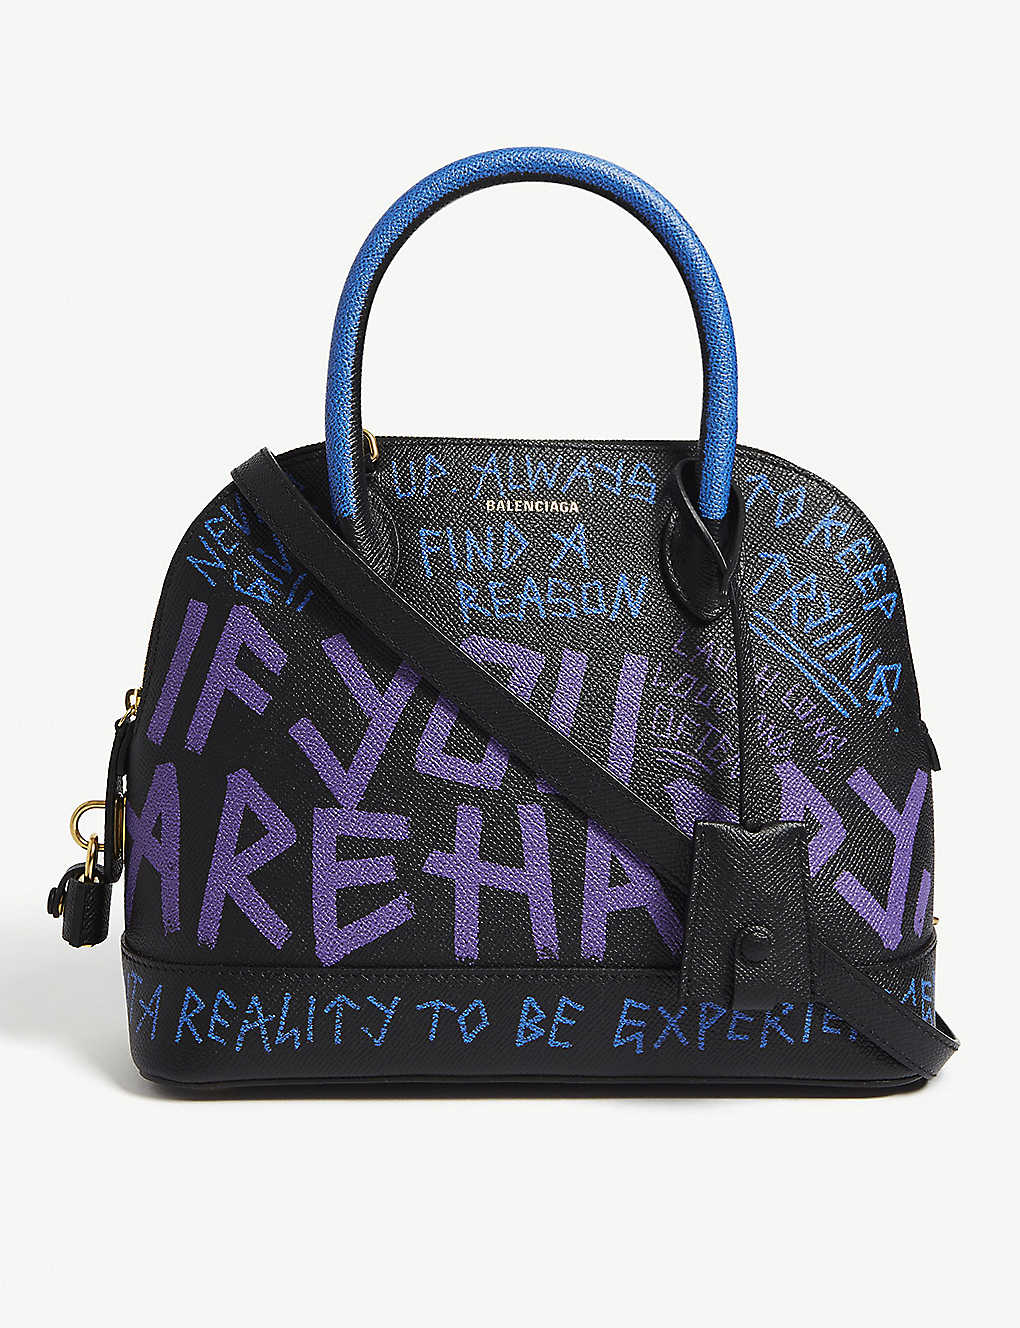 Graffiti handbag blackpurple